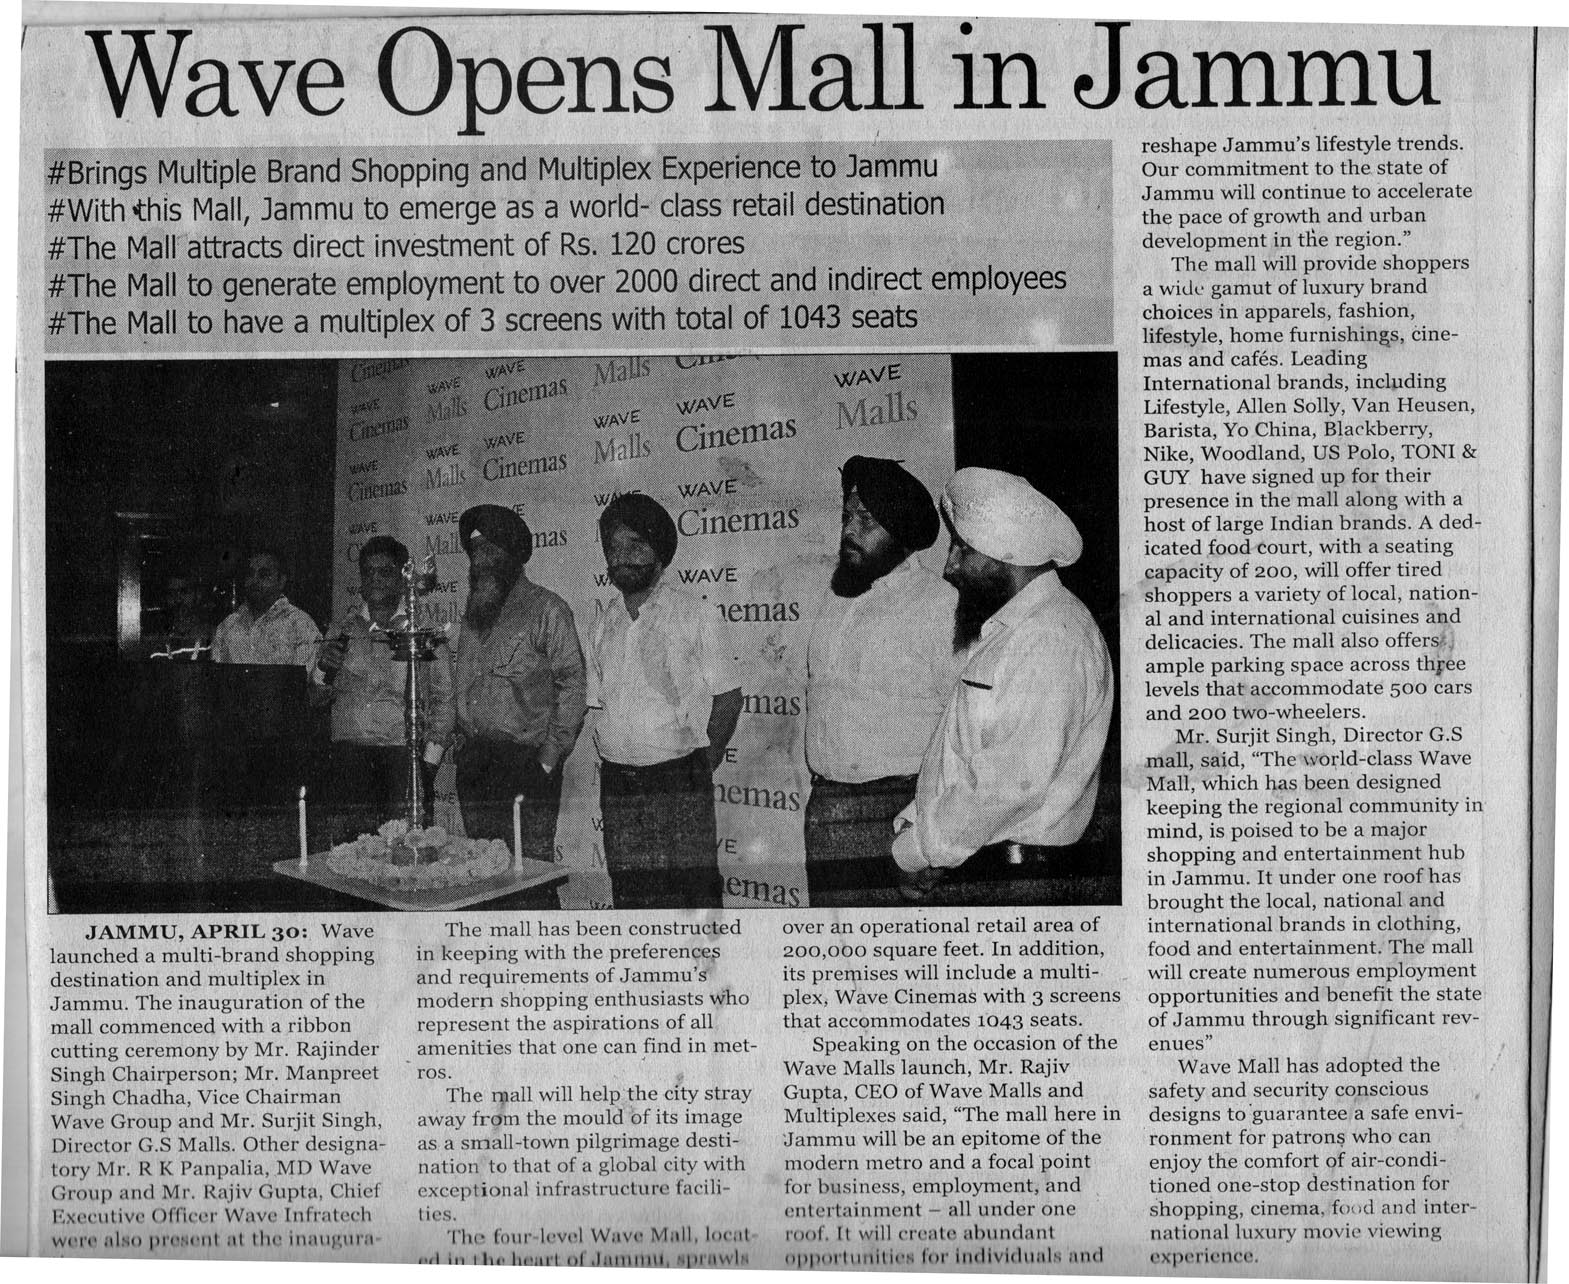 Wave Mall launch in Jammu